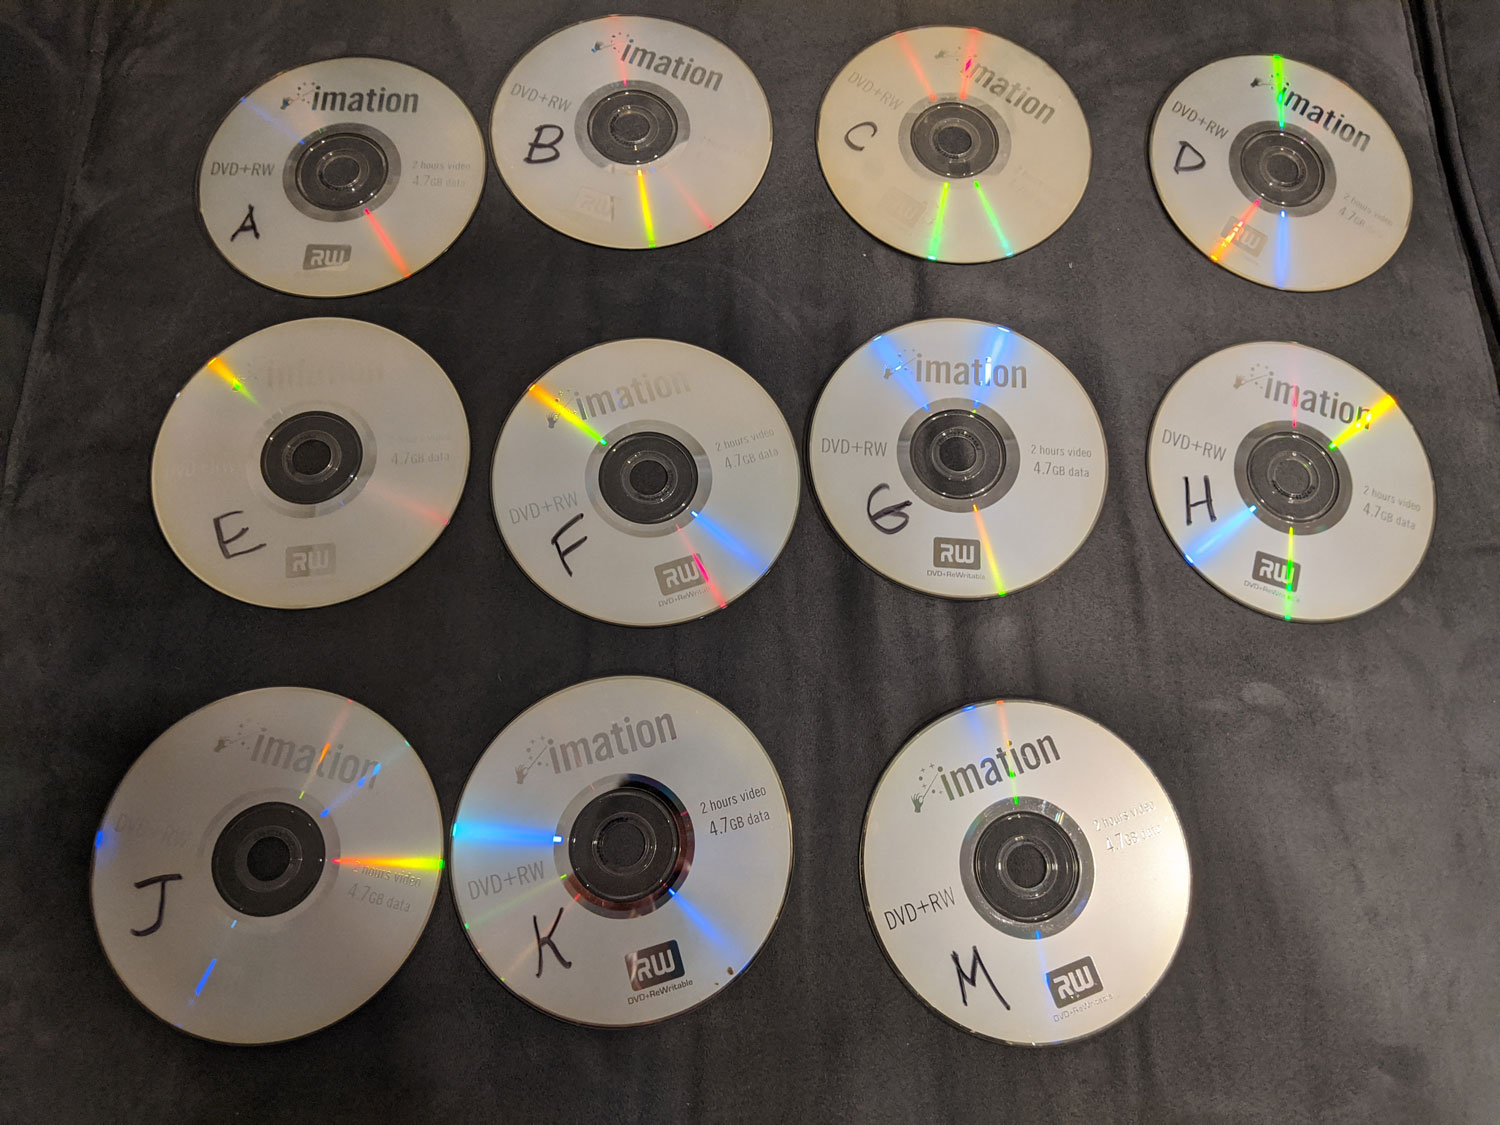 Photo of rewritable DVDs labeled by letter